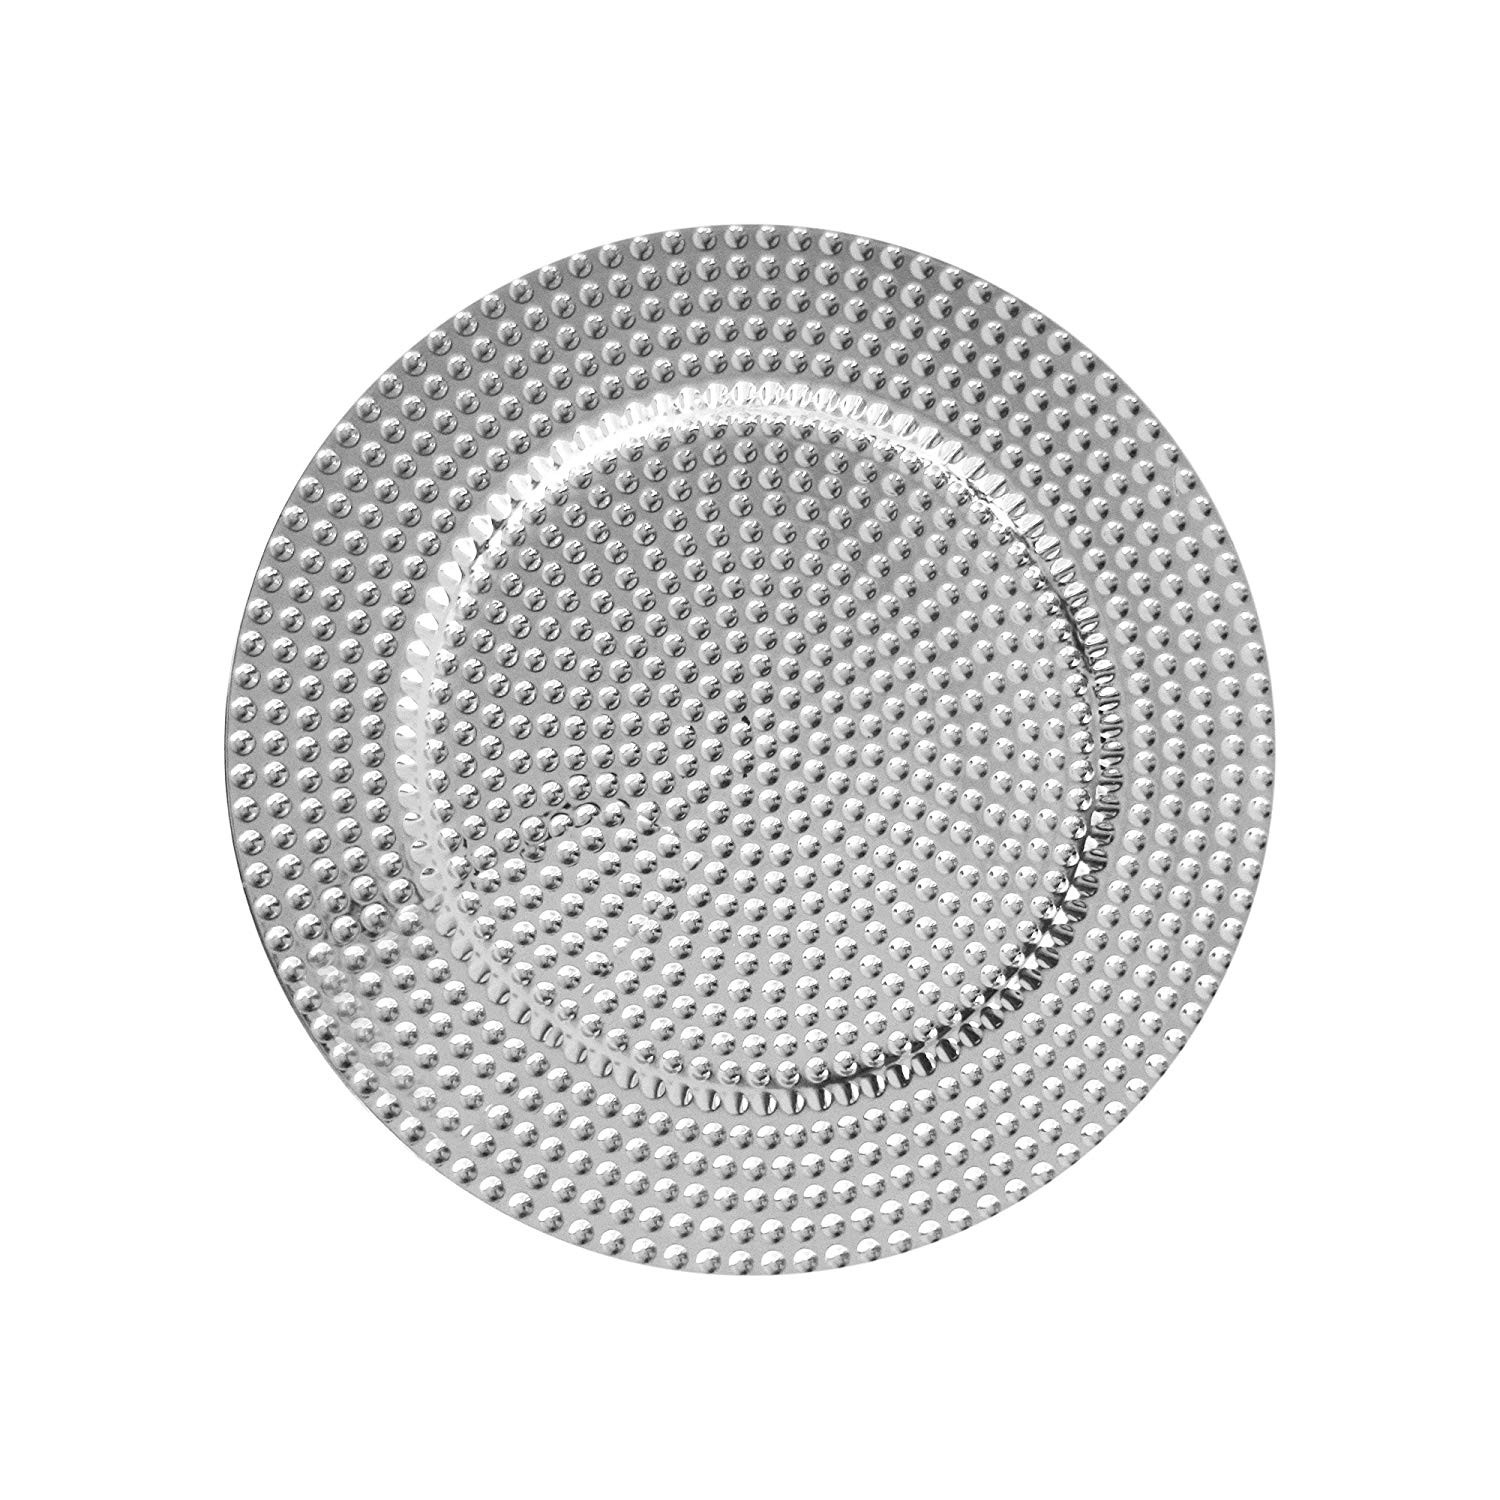 ChargeIt by Jay Beaded Charger Plates (Set of 4), Silver